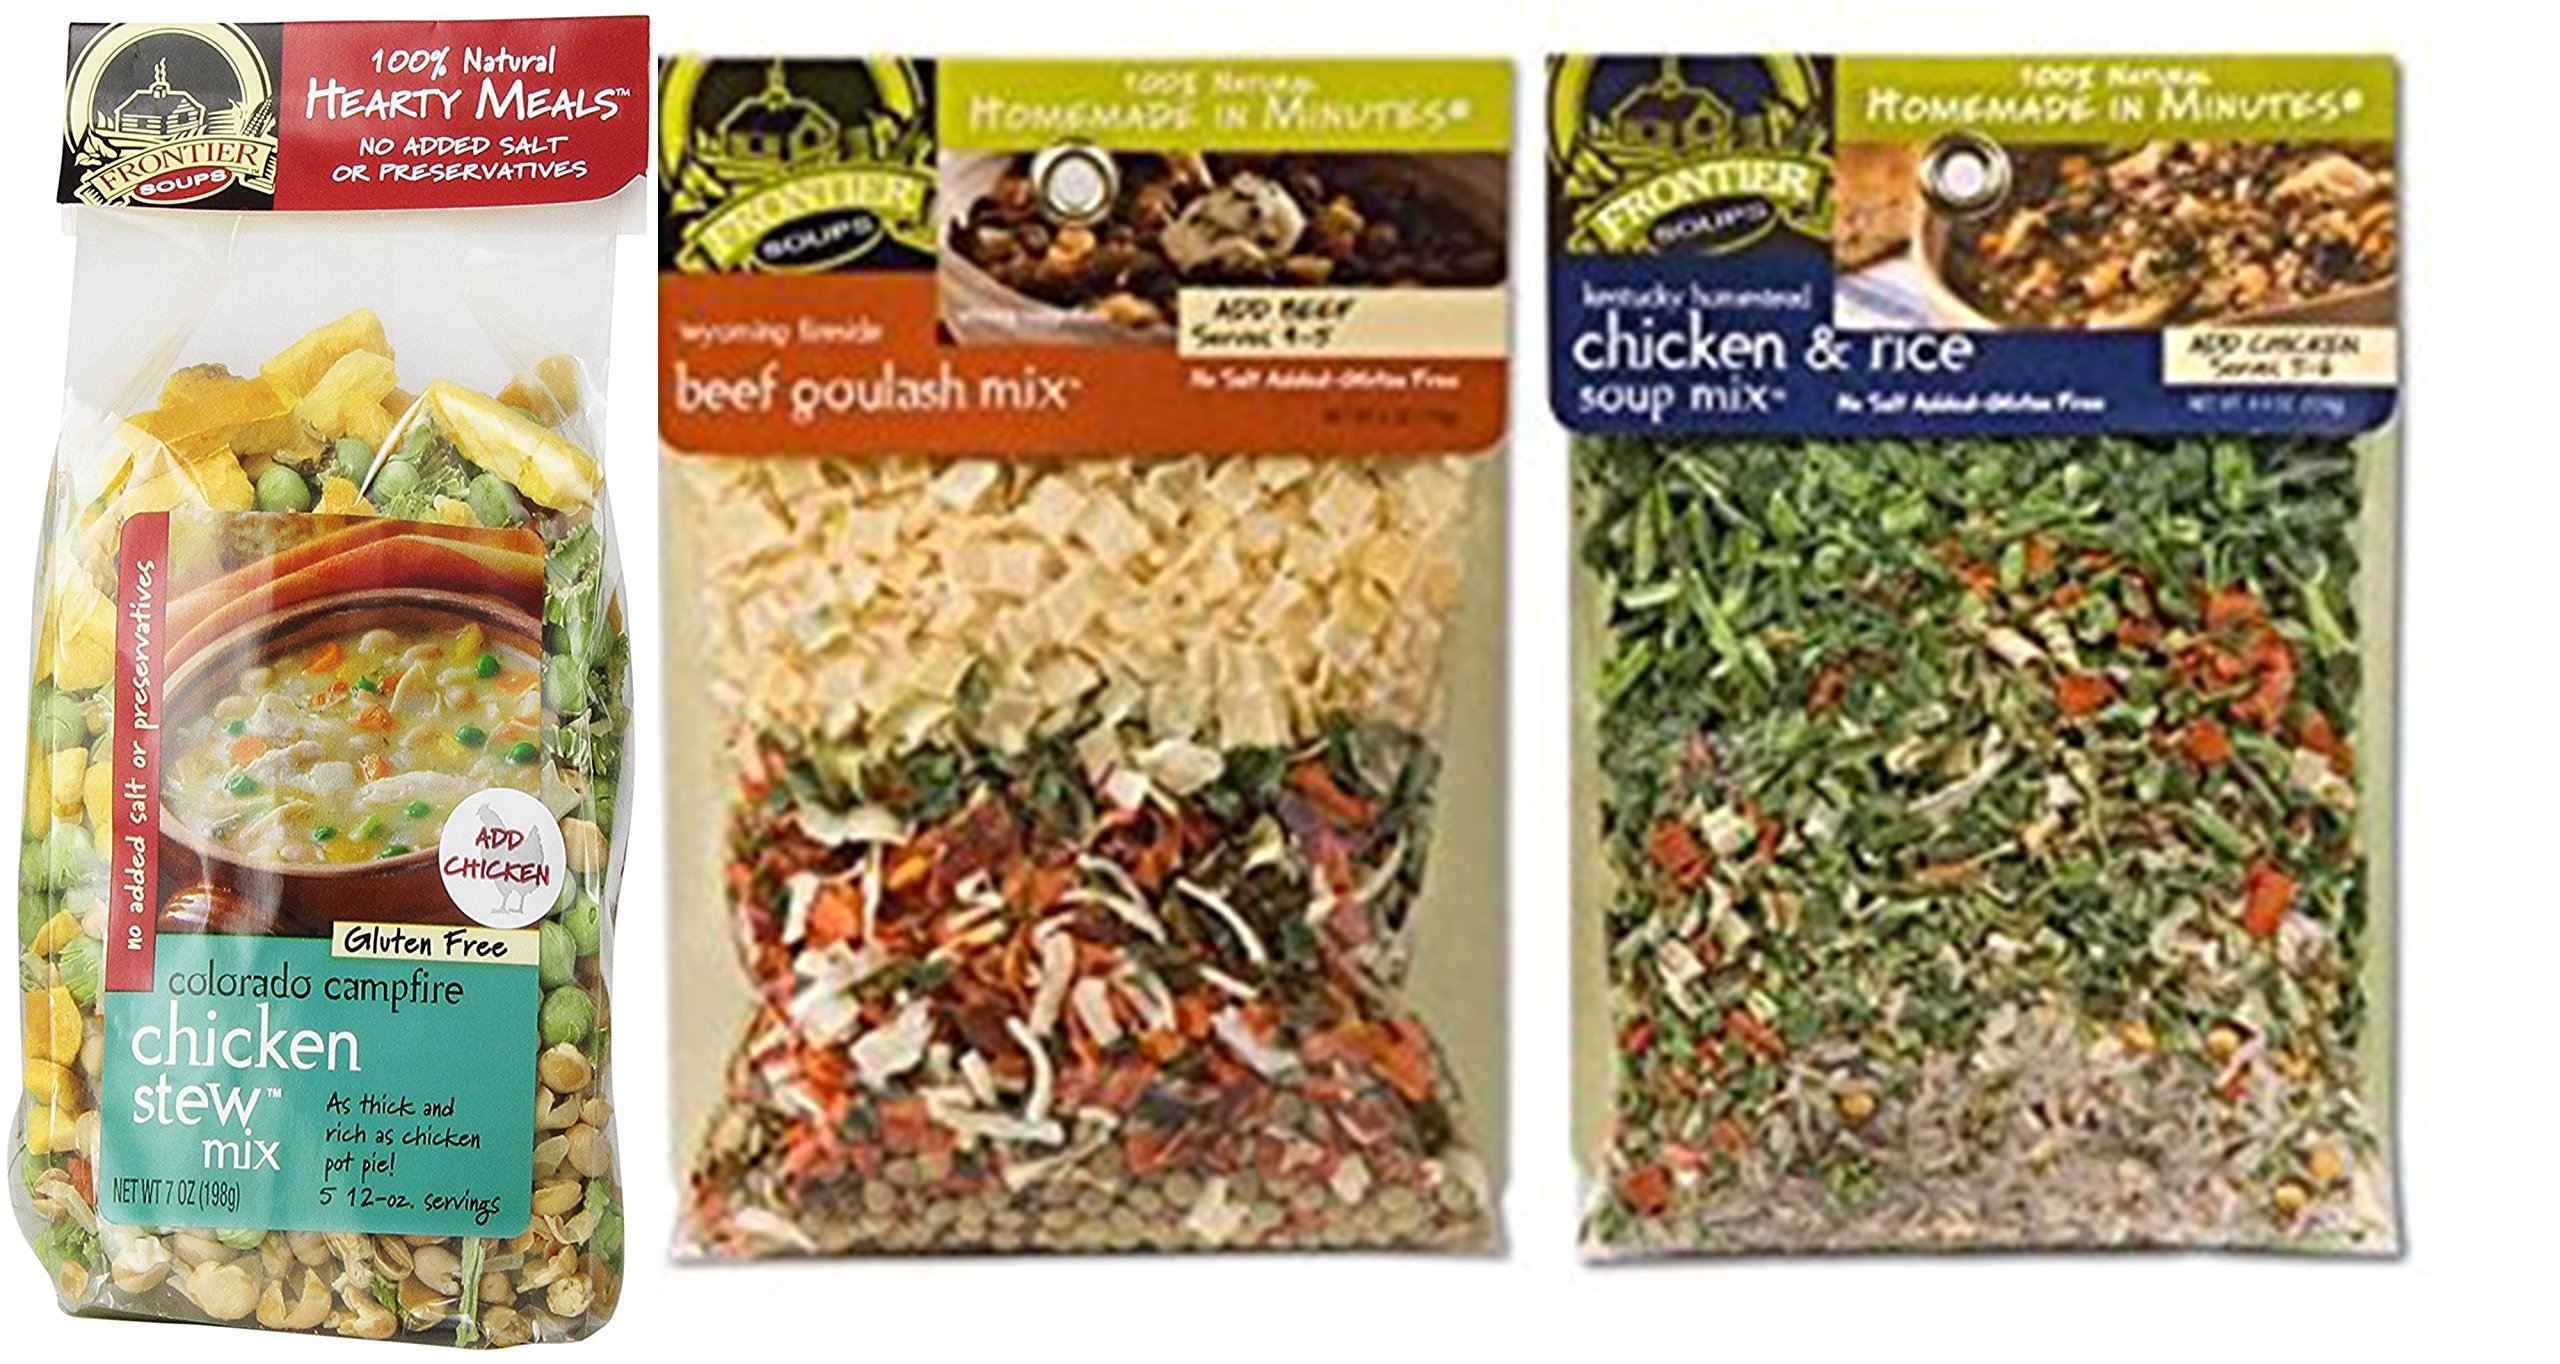 Frontier Soups Homemade In Minutes Bundle: Hearty Colorado Campfire Chicken Stew Mix 7 Oz, Wyoming Fireside Beef Goulash Mix 6 oz, Kentucky Homestead Chicken and Rice Soup Mix 4.25 oz by Frontier Soups